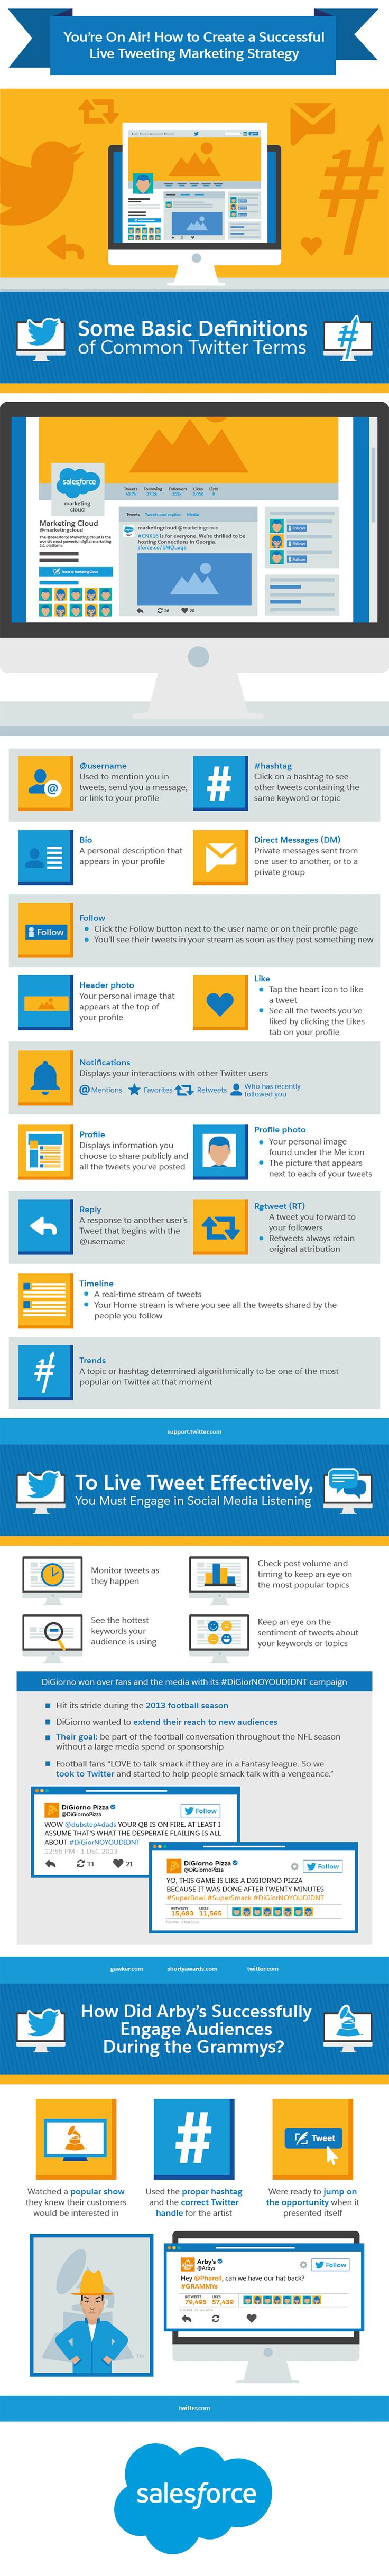 How to Create a Successful Live Tweeting Marketing Strategy [Infographic] | Social Media Today